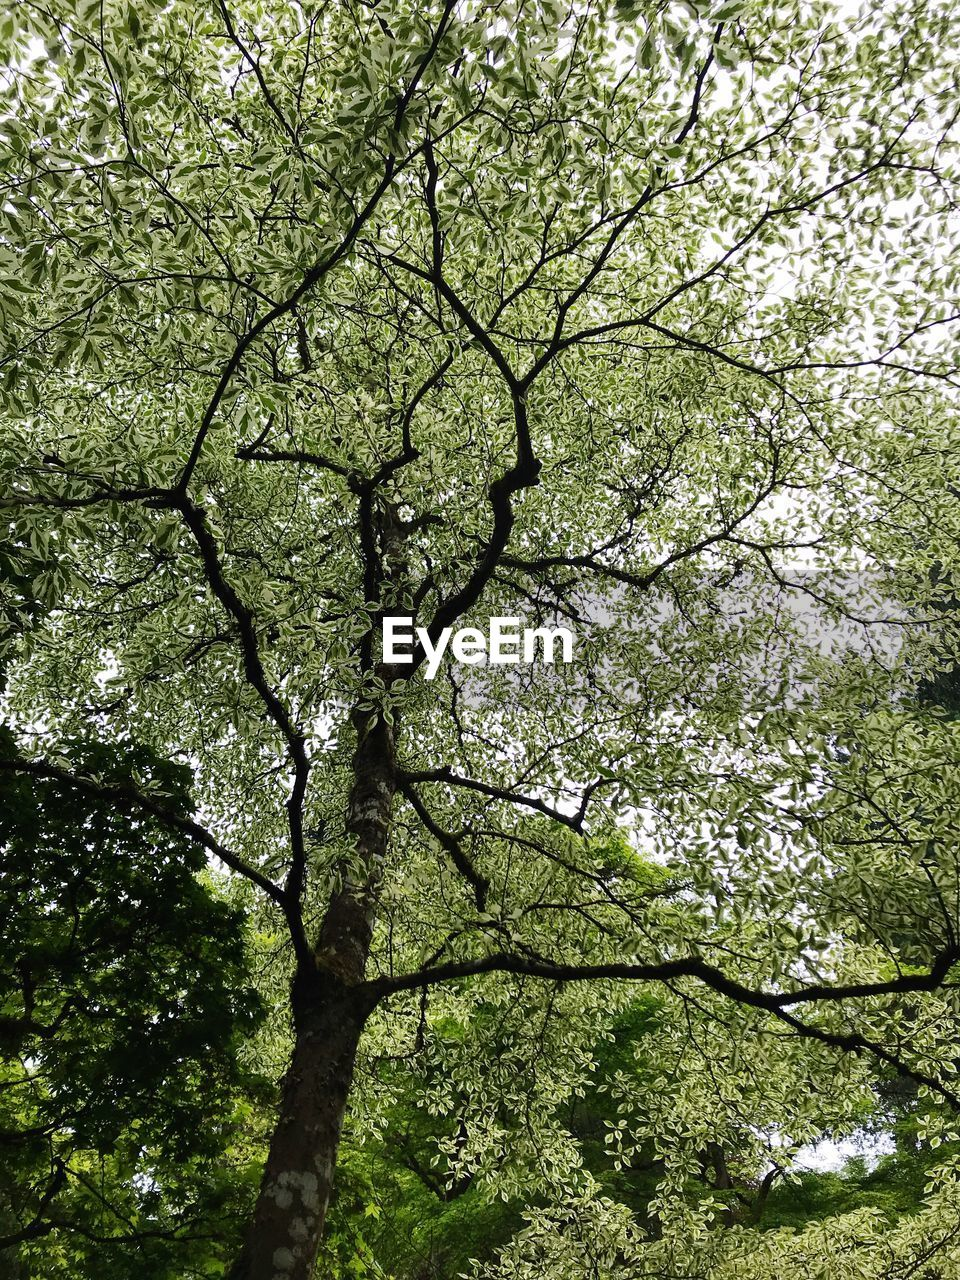 tree, plant, growth, branch, low angle view, day, nature, beauty in nature, green color, no people, full frame, tranquility, outdoors, backgrounds, land, scenics - nature, foliage, sunlight, lush foliage, forest, tree canopy, directly below